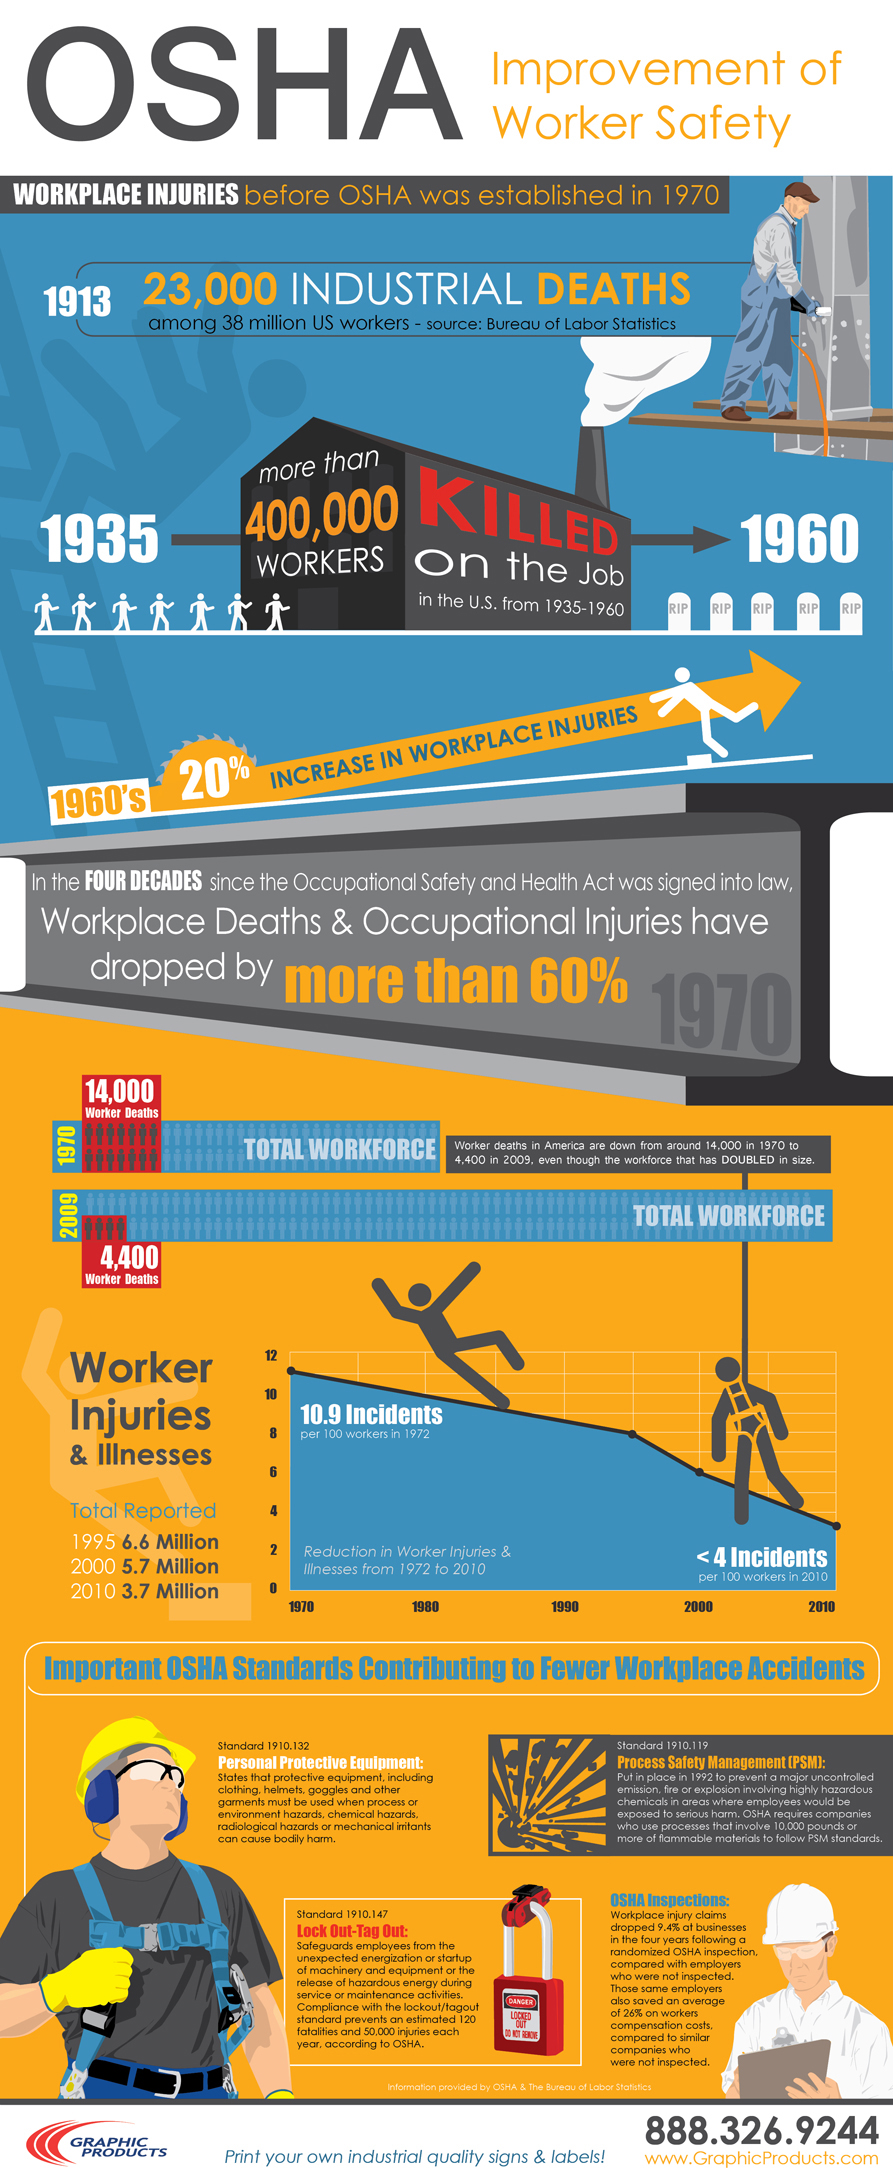 osha effect on workplace safety 4 decades later